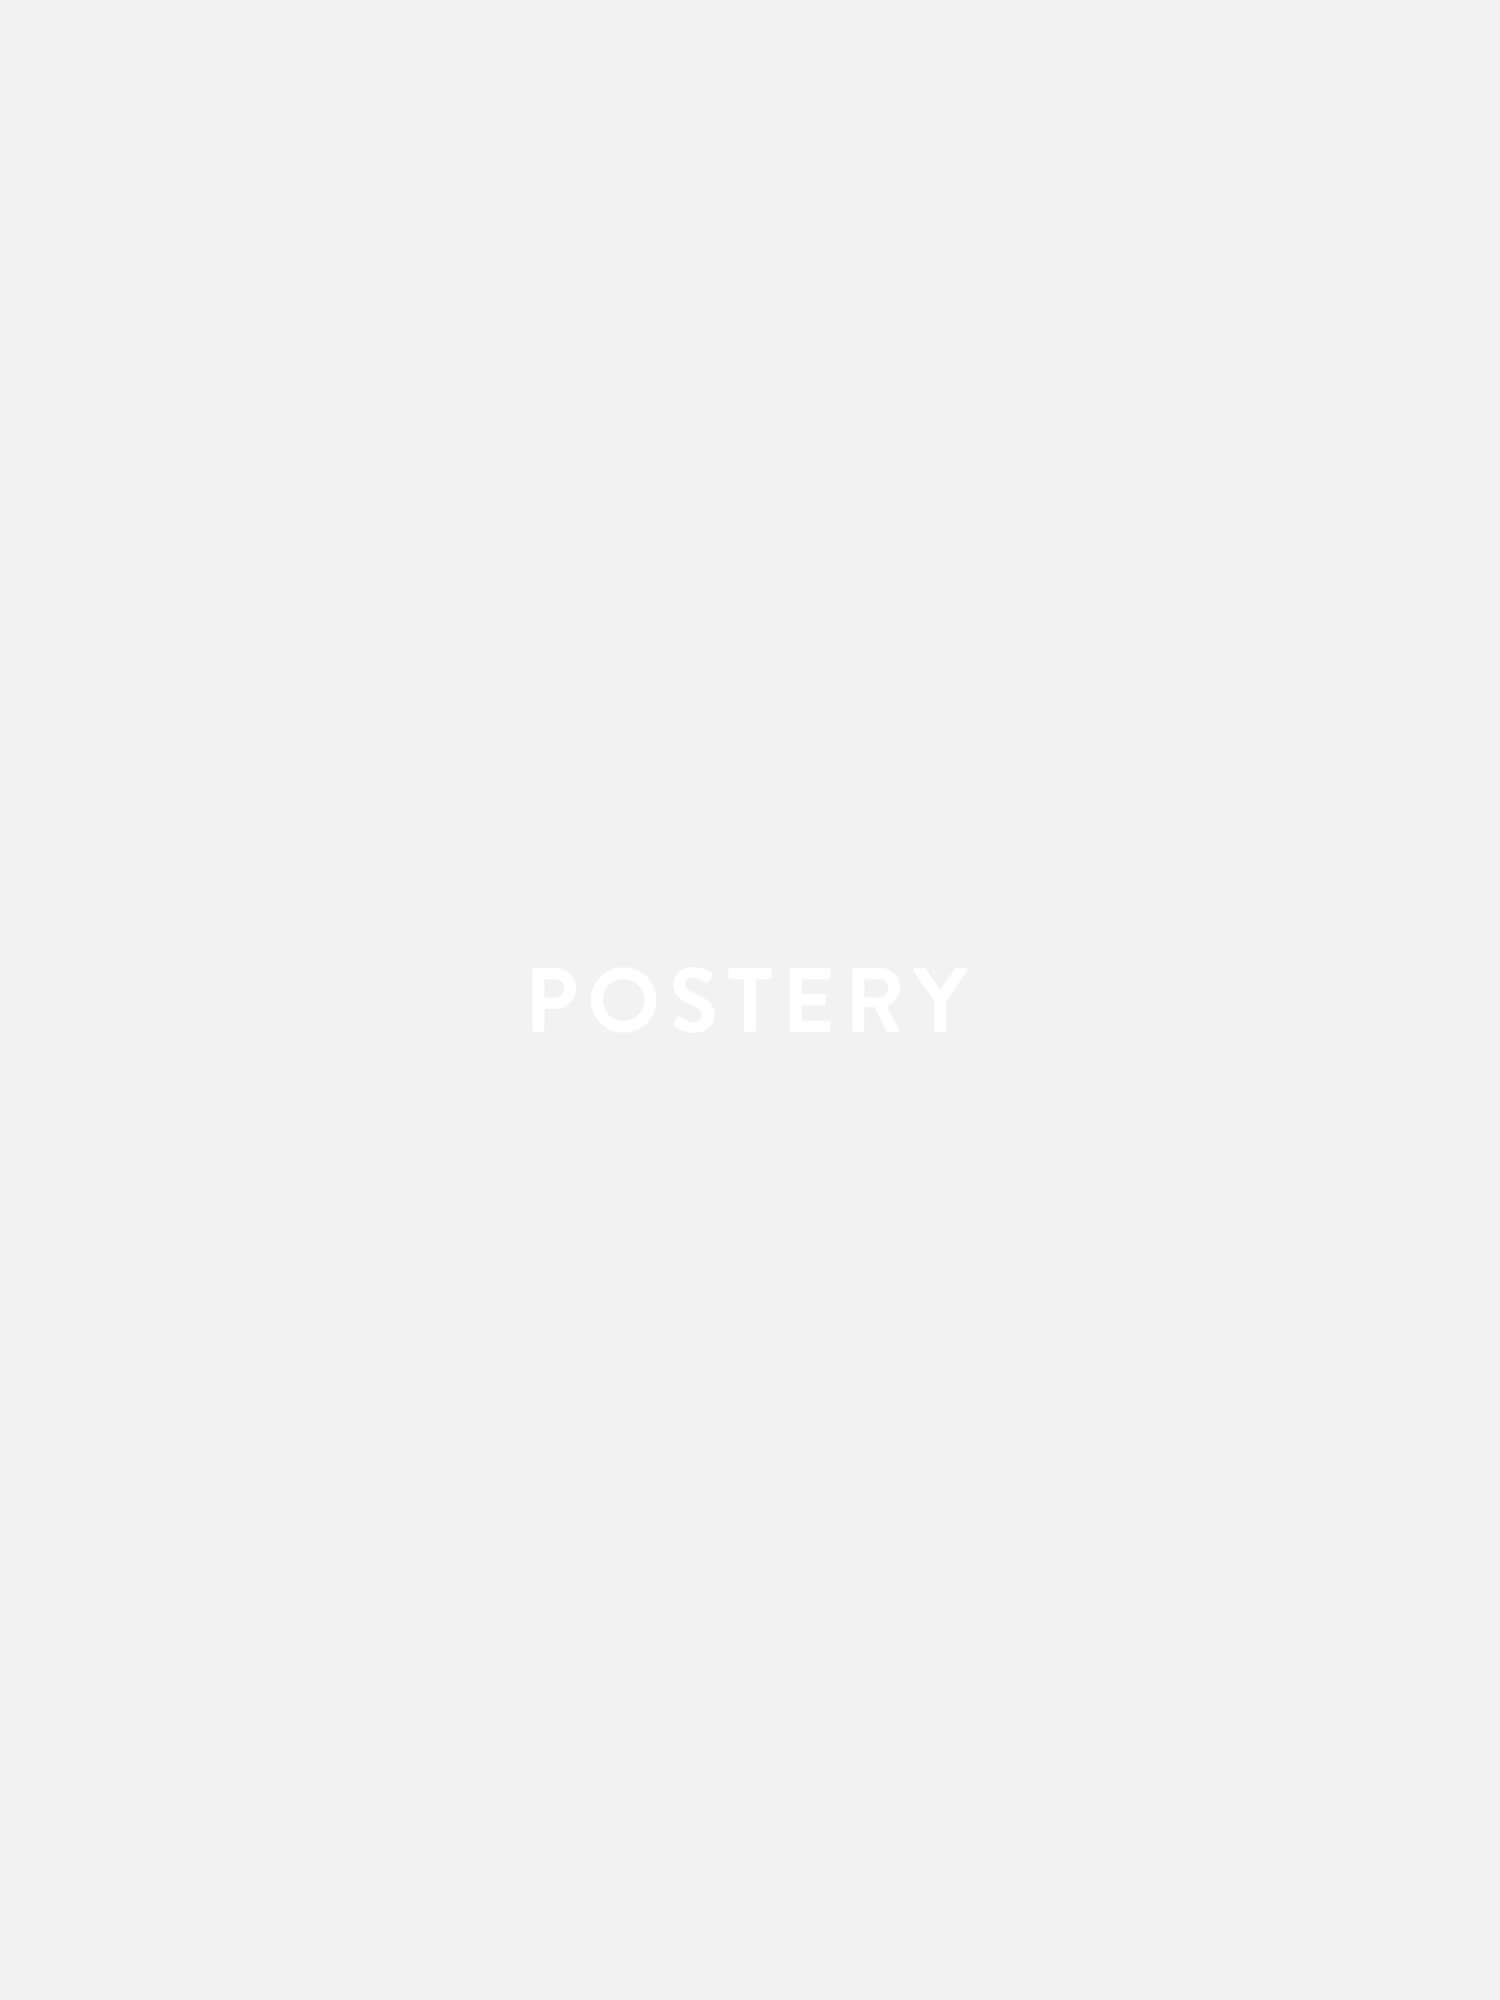 Wheat Straw Poster